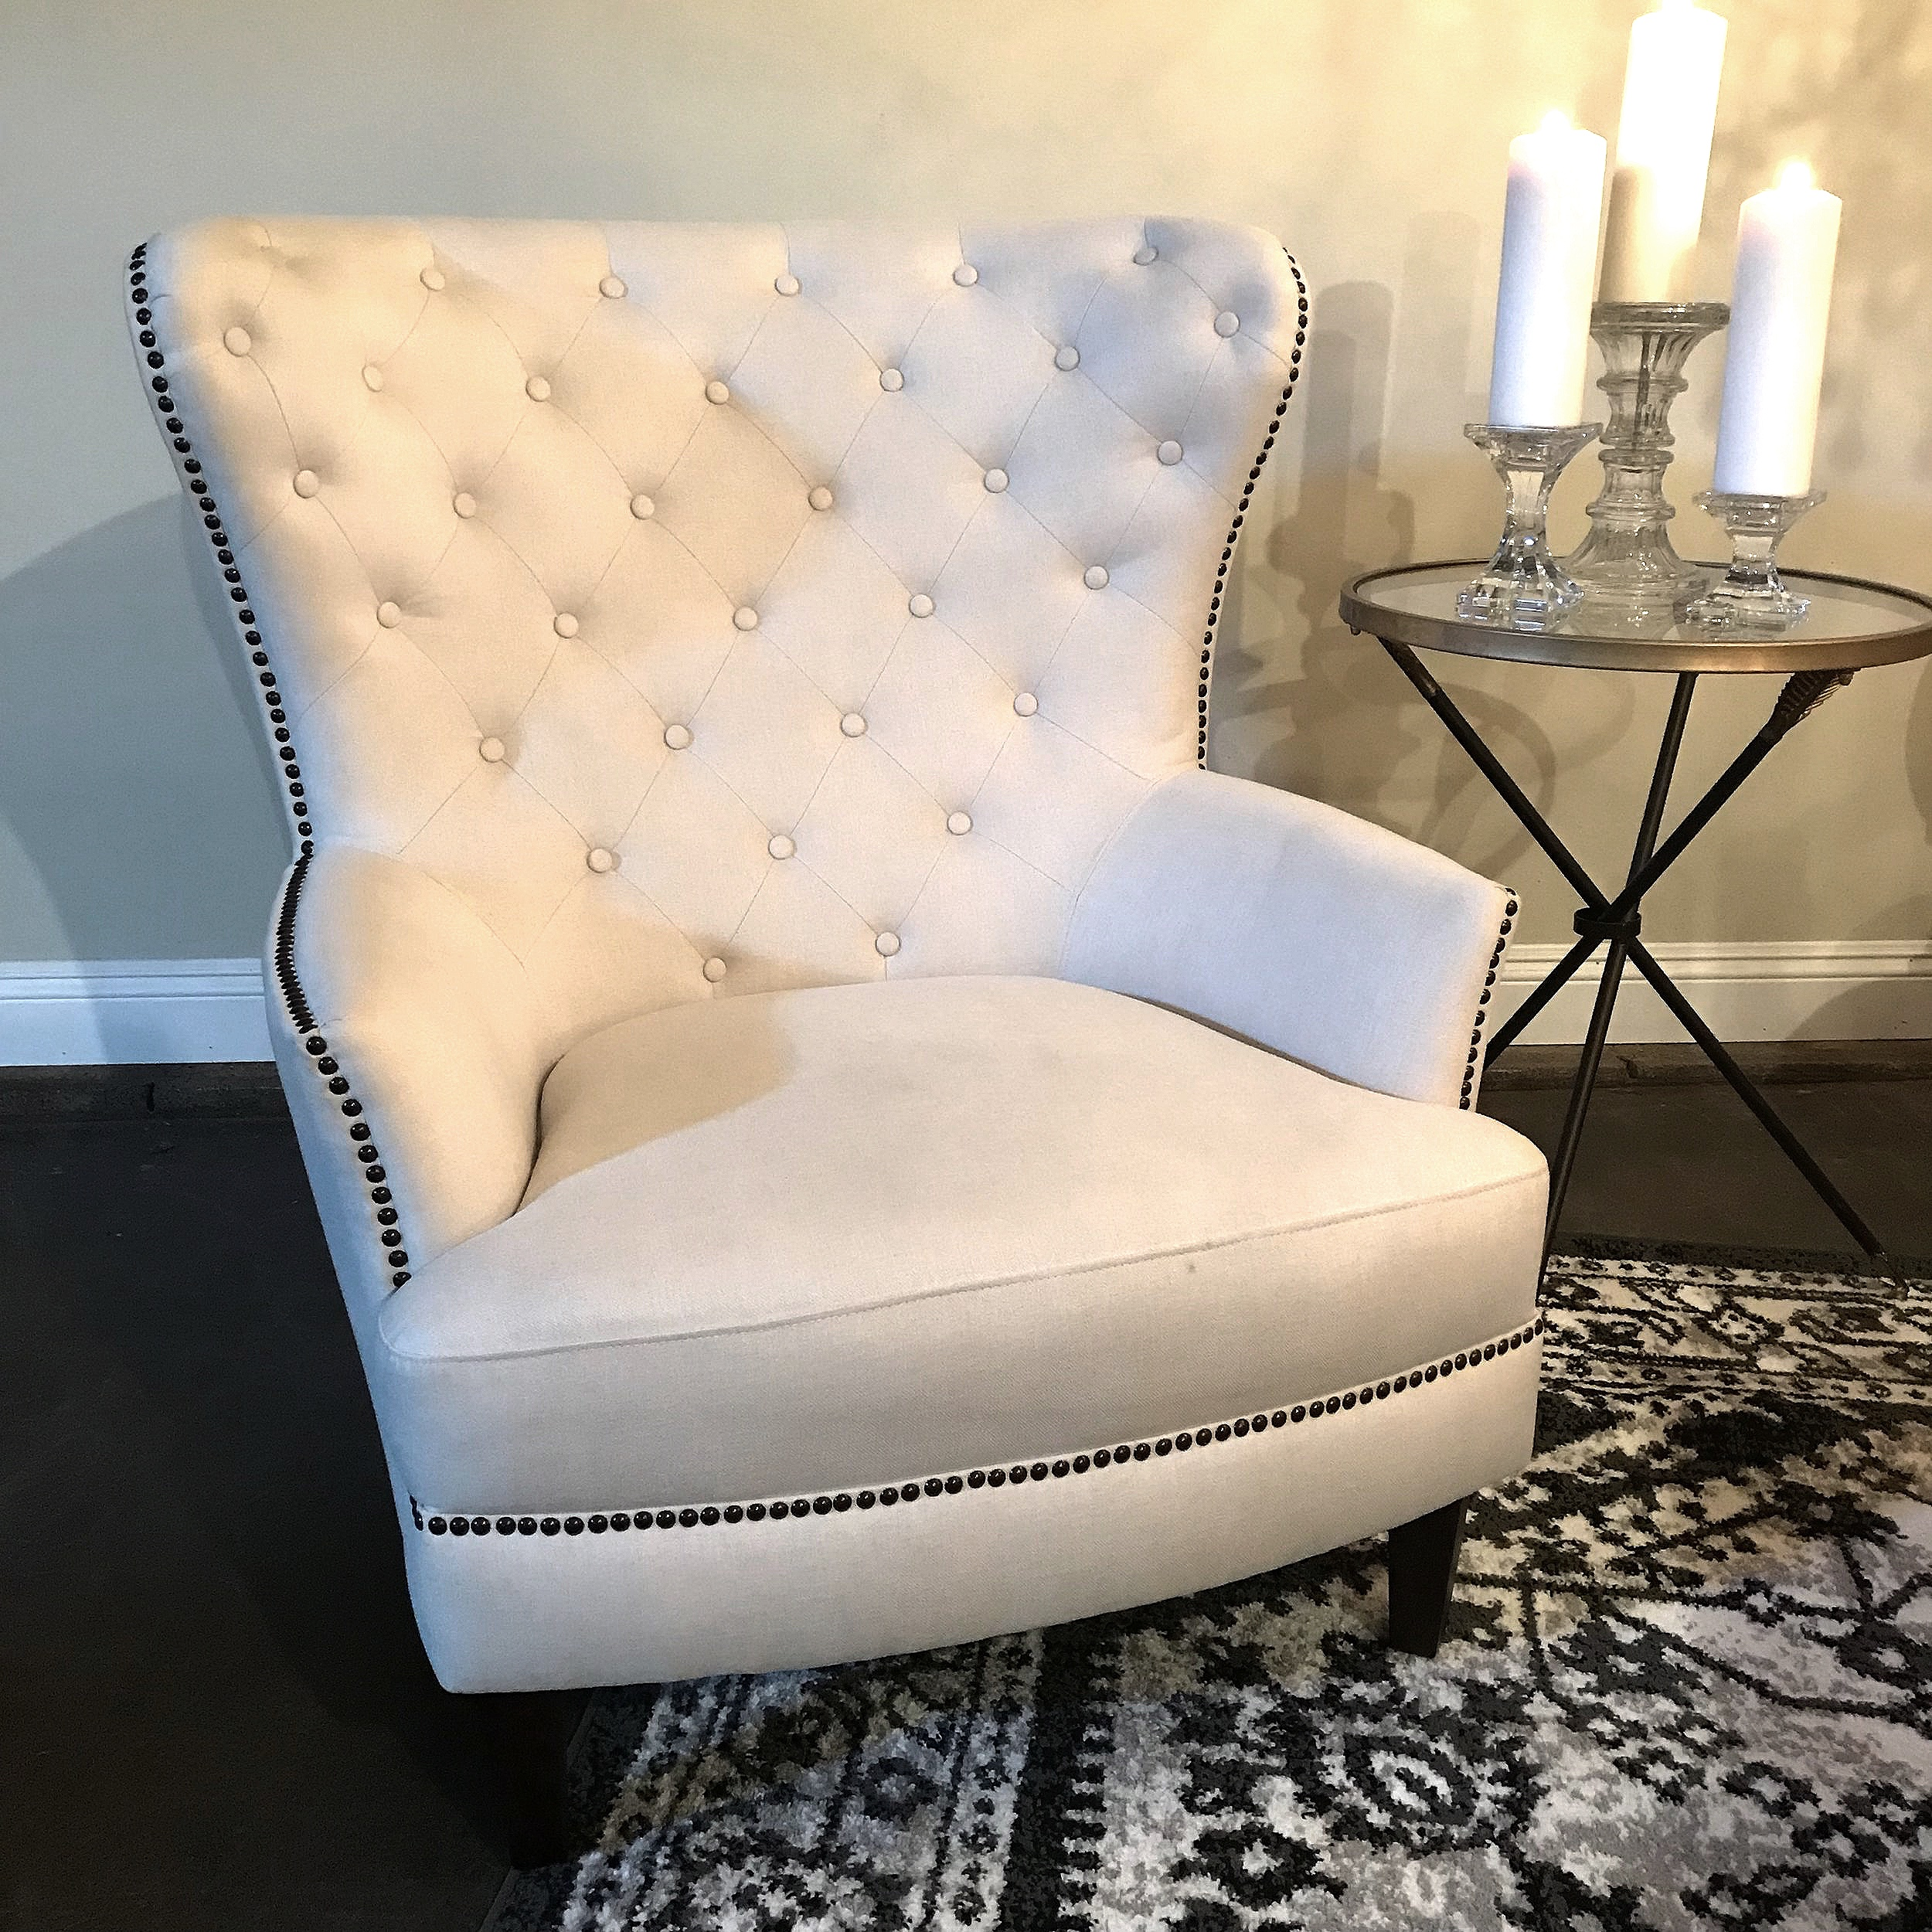 Logan  Cream linen, tufted wing back chair with nail head trim. Great for a lounge area.